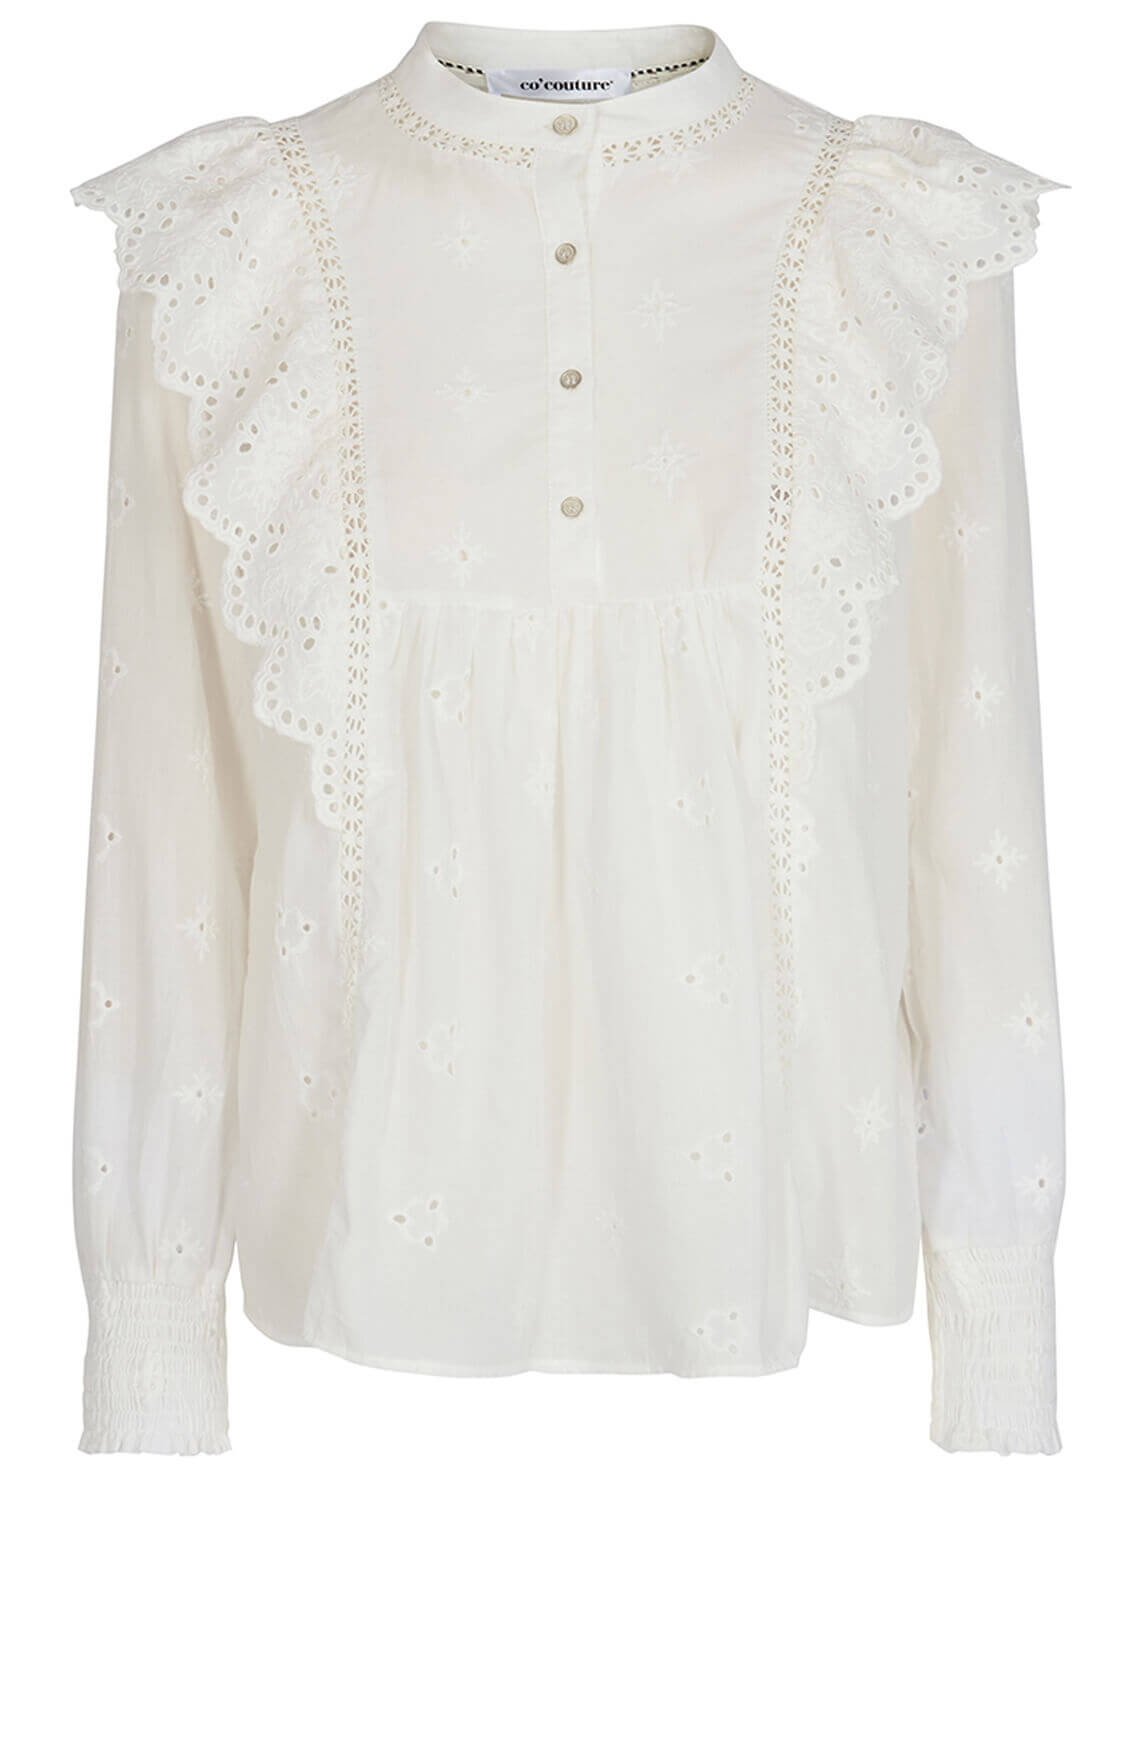 Co Couture Dames Izabel blouse wit